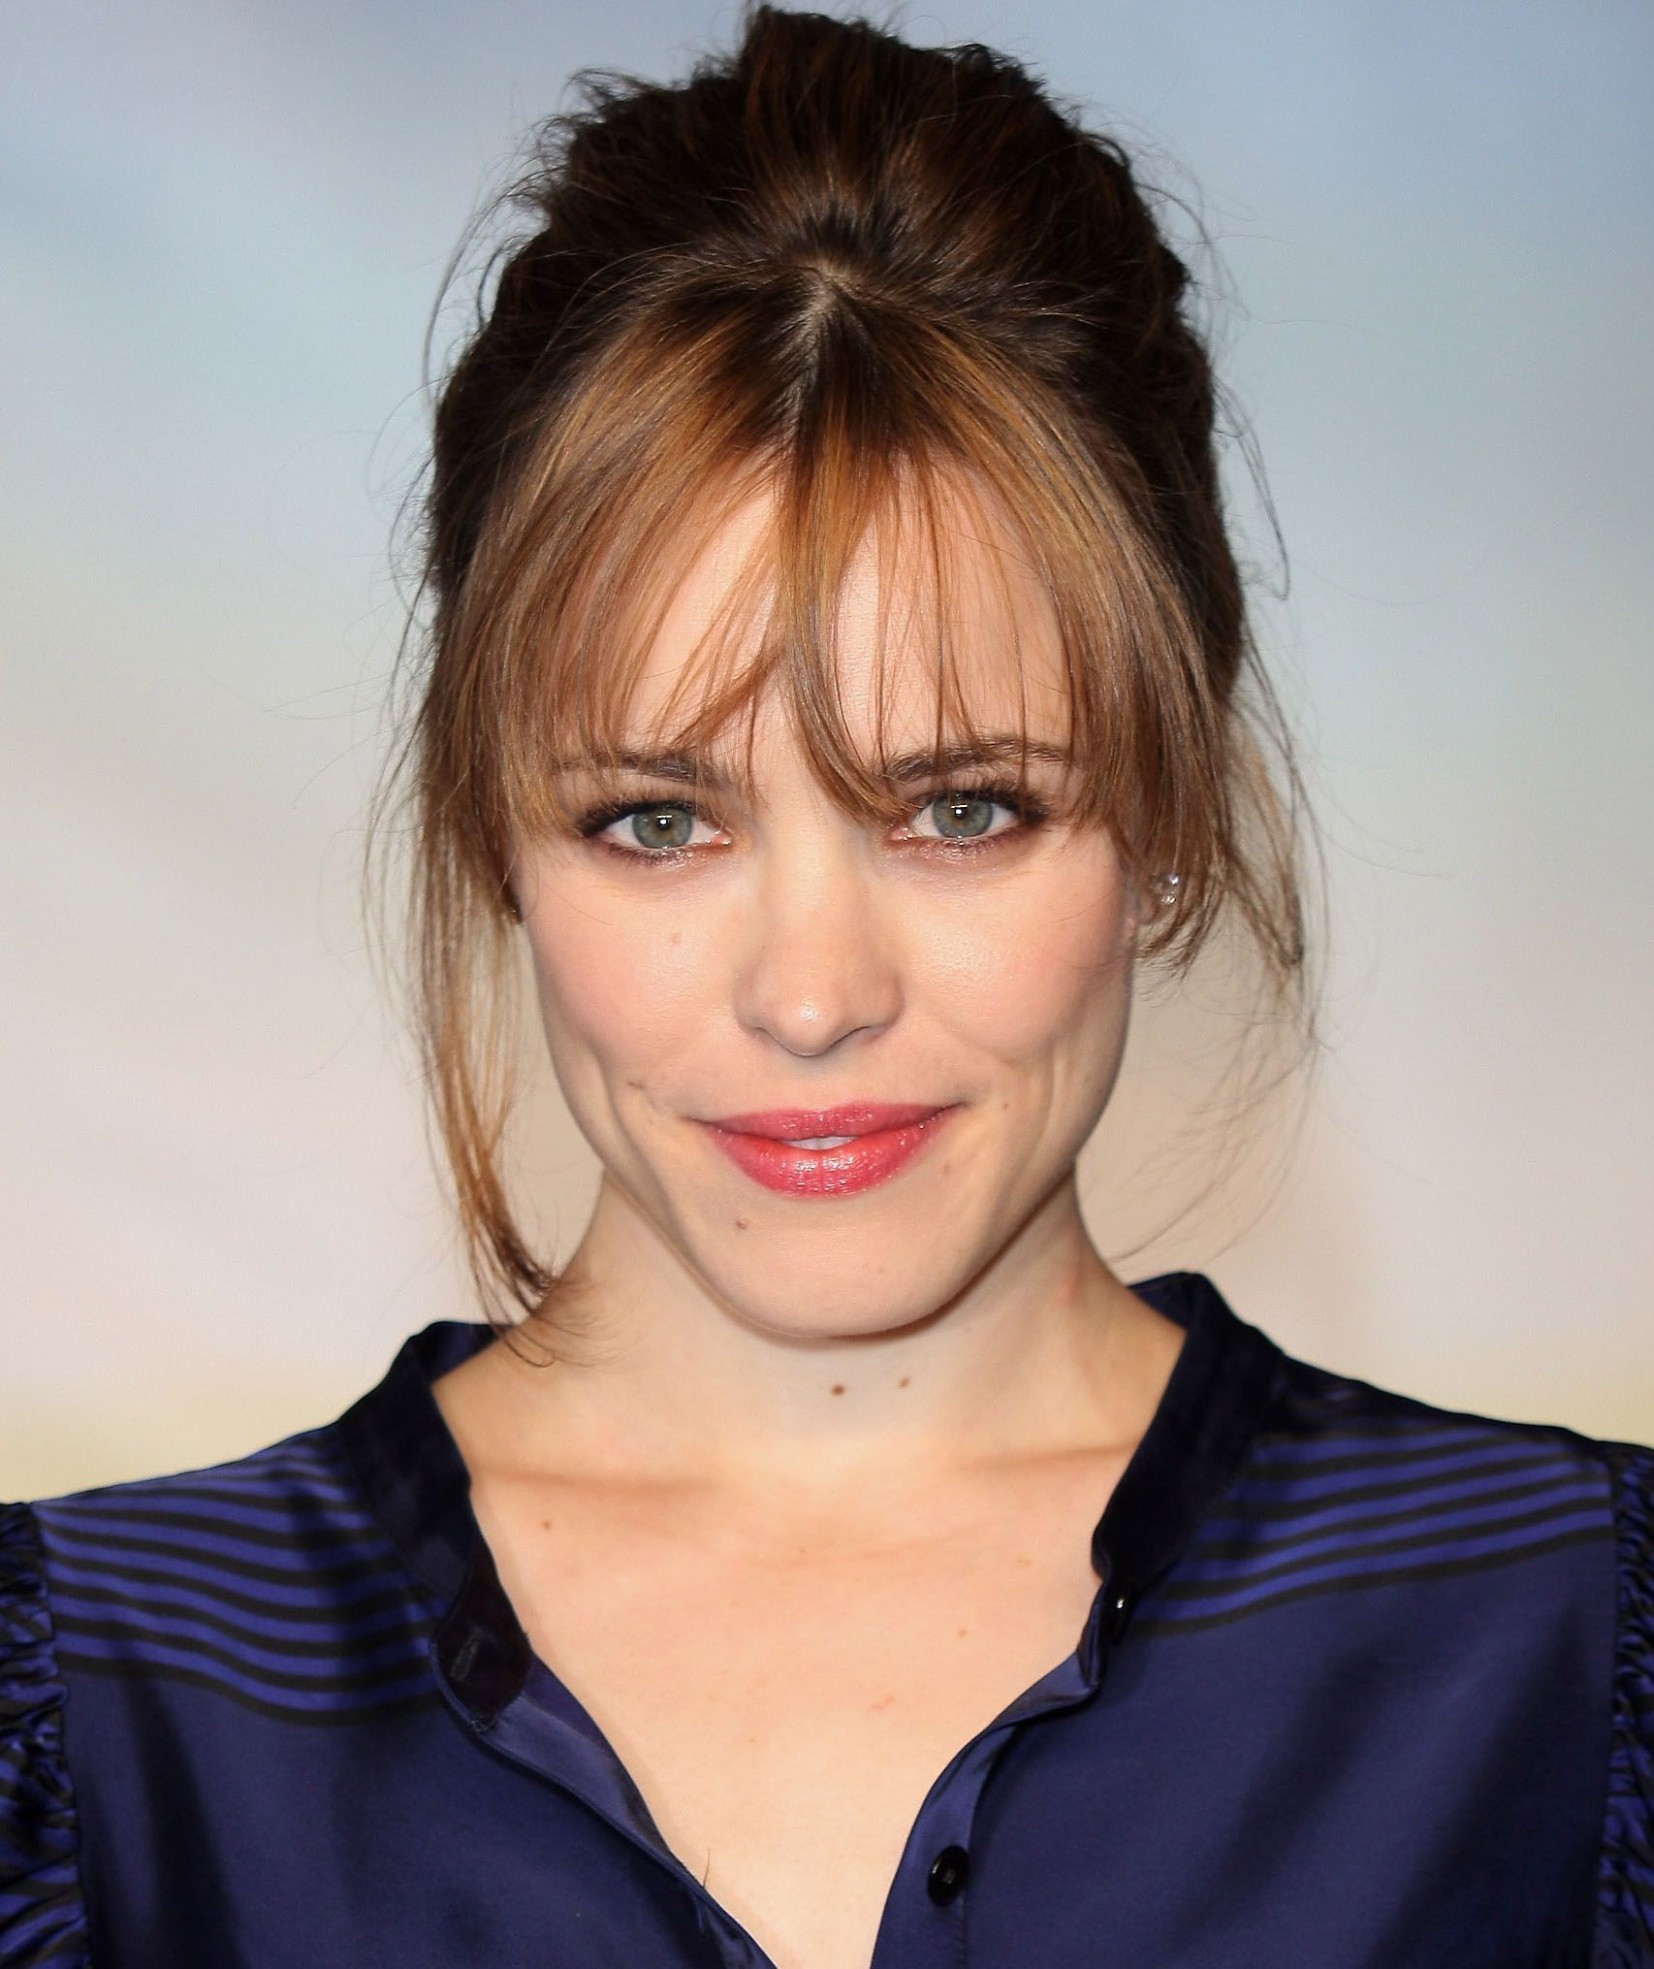 The Most Flattering Haircuts For Large Foreheads, According To A Bangs For Round Face And Big Forehead